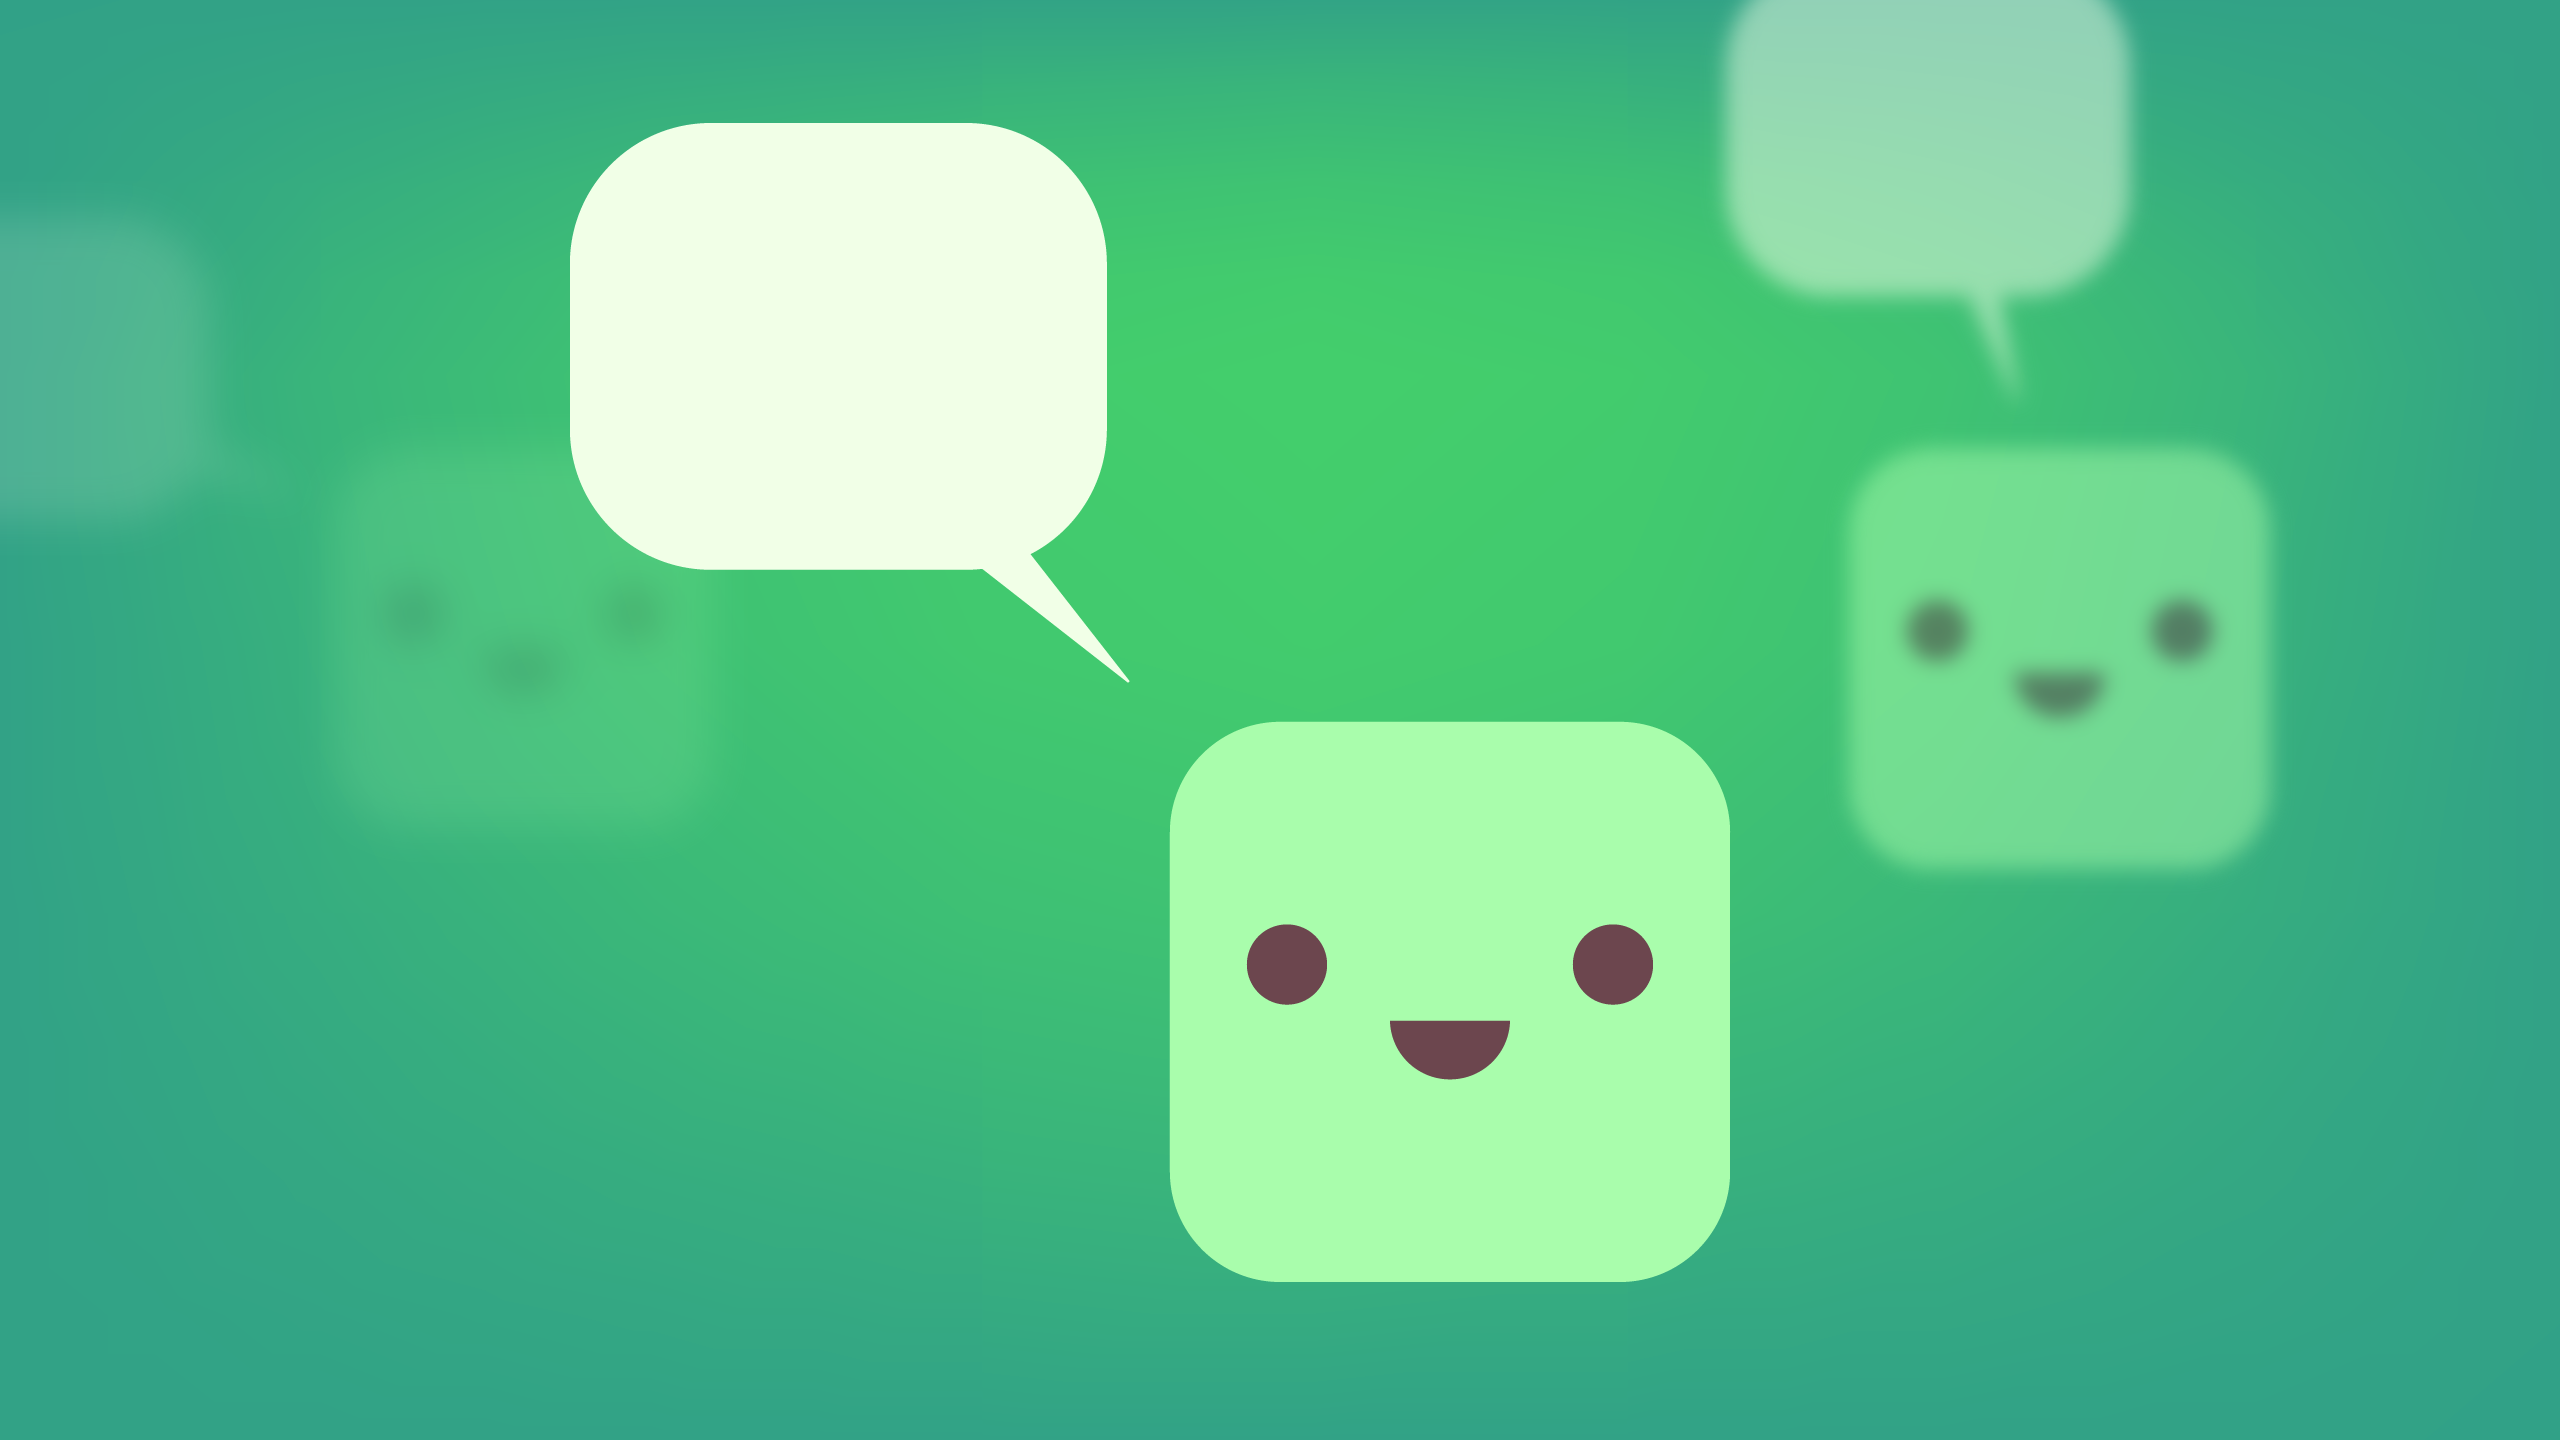 Choosing the best language to build your AI chatbot